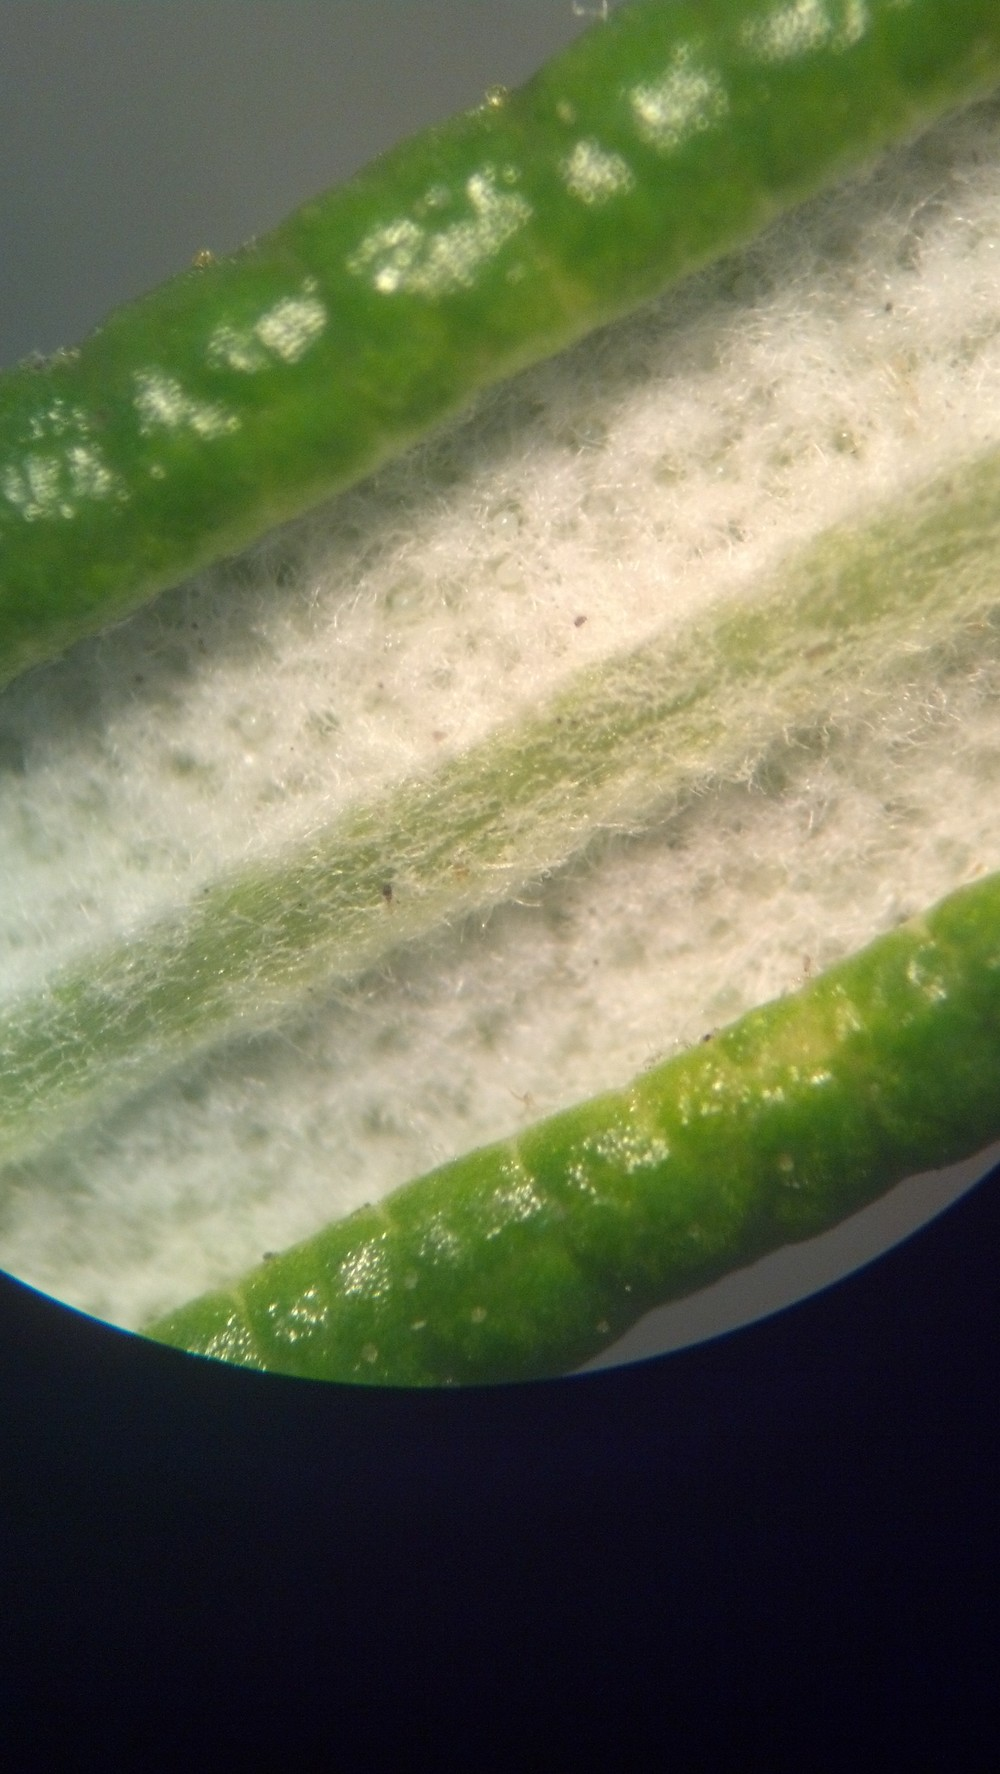 Oil glands and trichomes (hairs) on the underside of a rosemary leaf (Rosmarinus sp.)